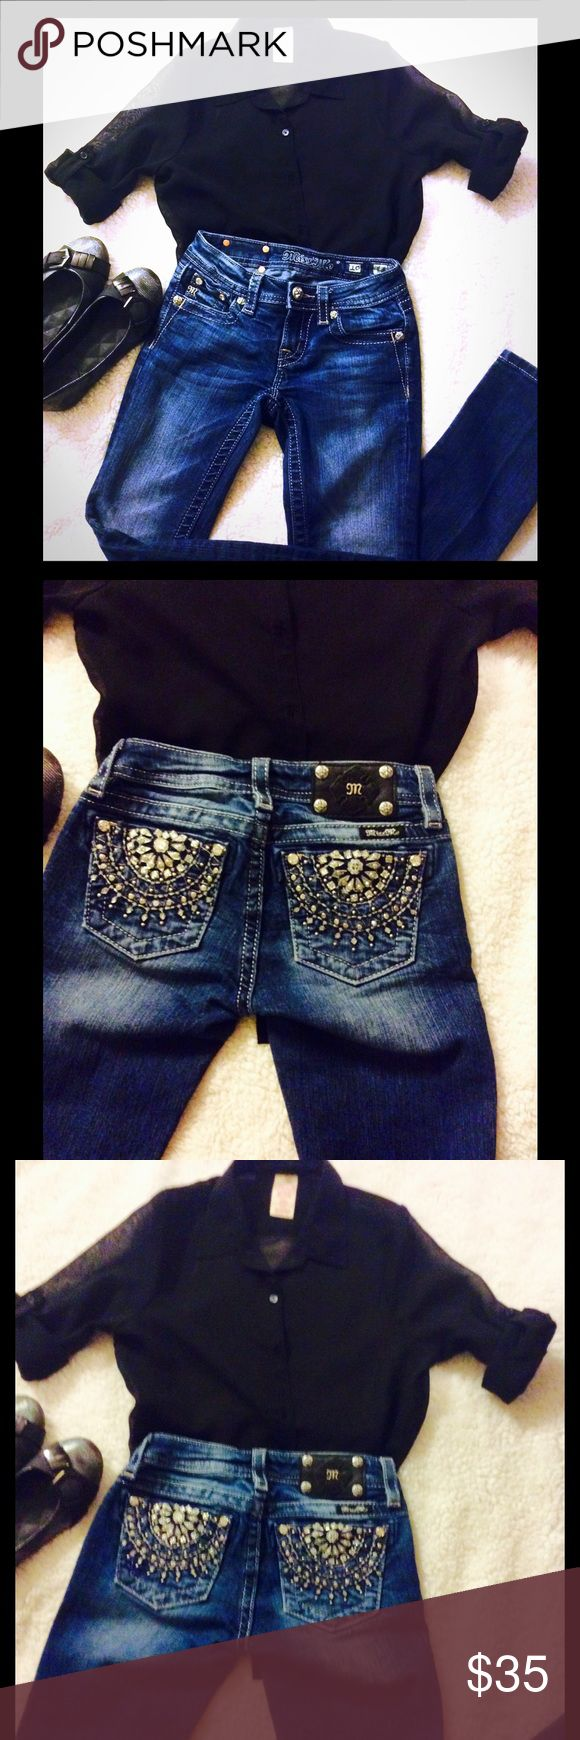 🔆 Girls Miss Me Jeans/Skinny Bling, Bling!✨ ❤️Miss Me Girls Skinny Jeans. Dark Wash. EUC, as are most of my daughter's clothes. She wanted a pair for Christmas, but thinks they don't fit her right!? They are size 10. A blend of cotton, polyester, and elastane. Surprise your girl for Valentines Day? ❤️ Miss Me Bottoms Jeans